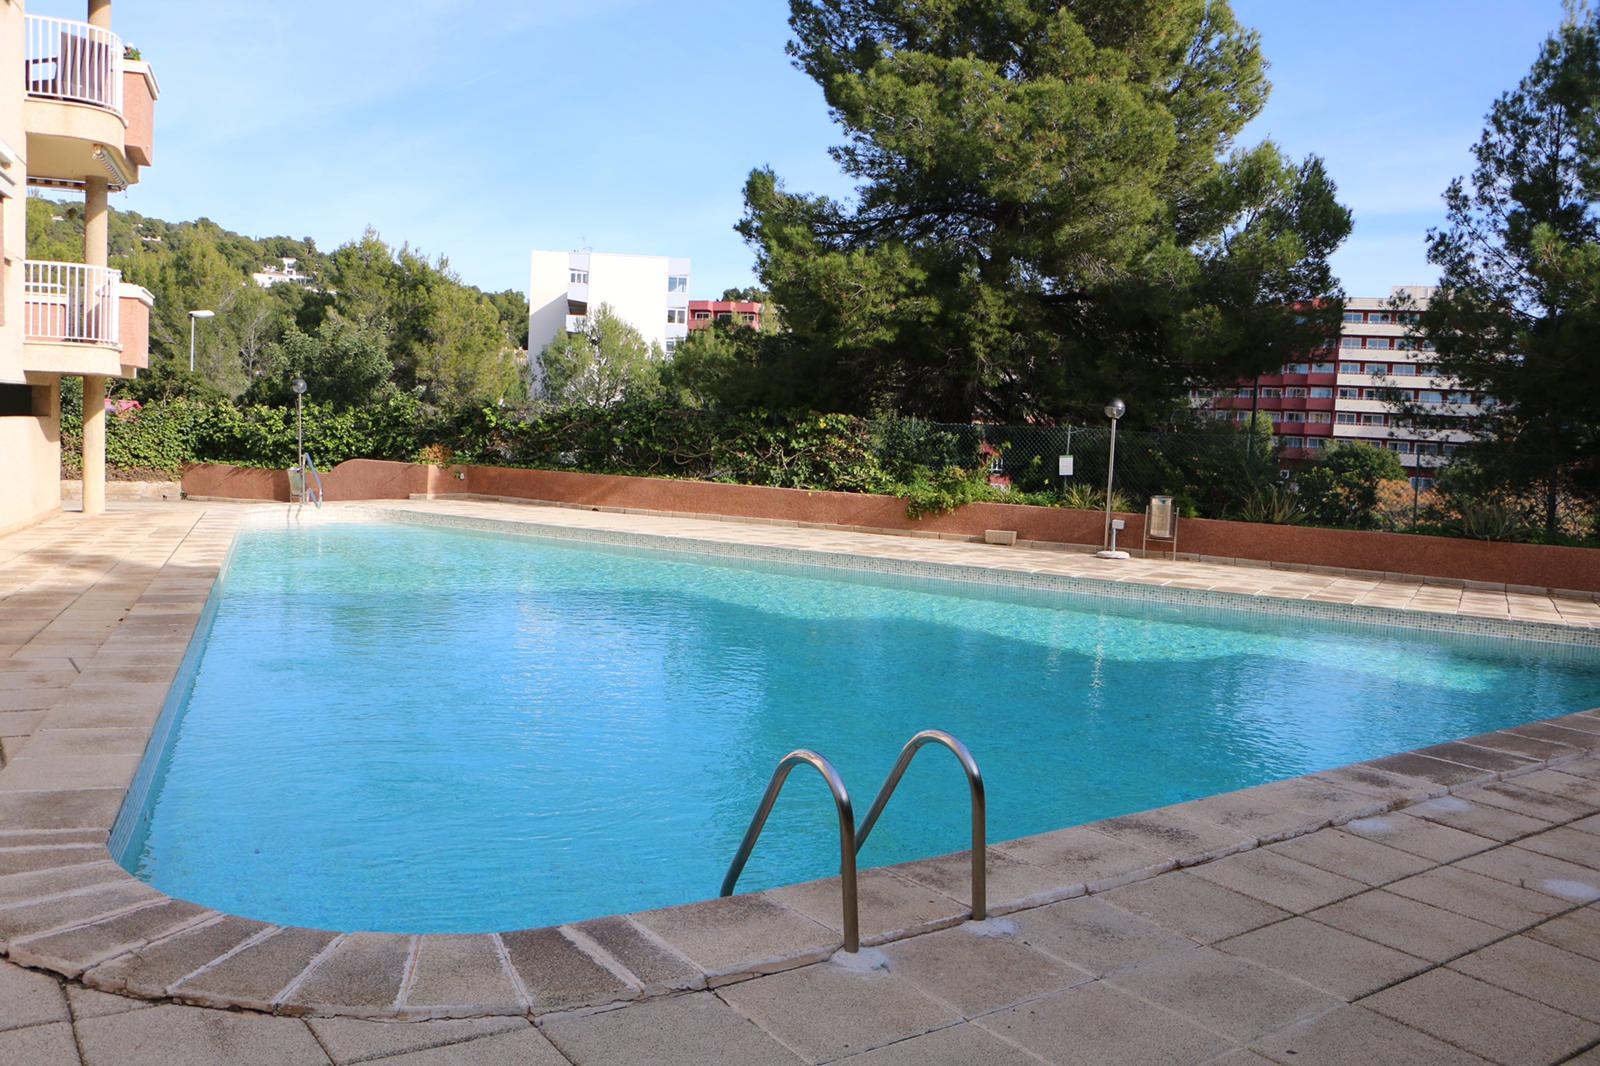 Portals Nous Mallorca: 2 bedrooms apartment with parking, pool